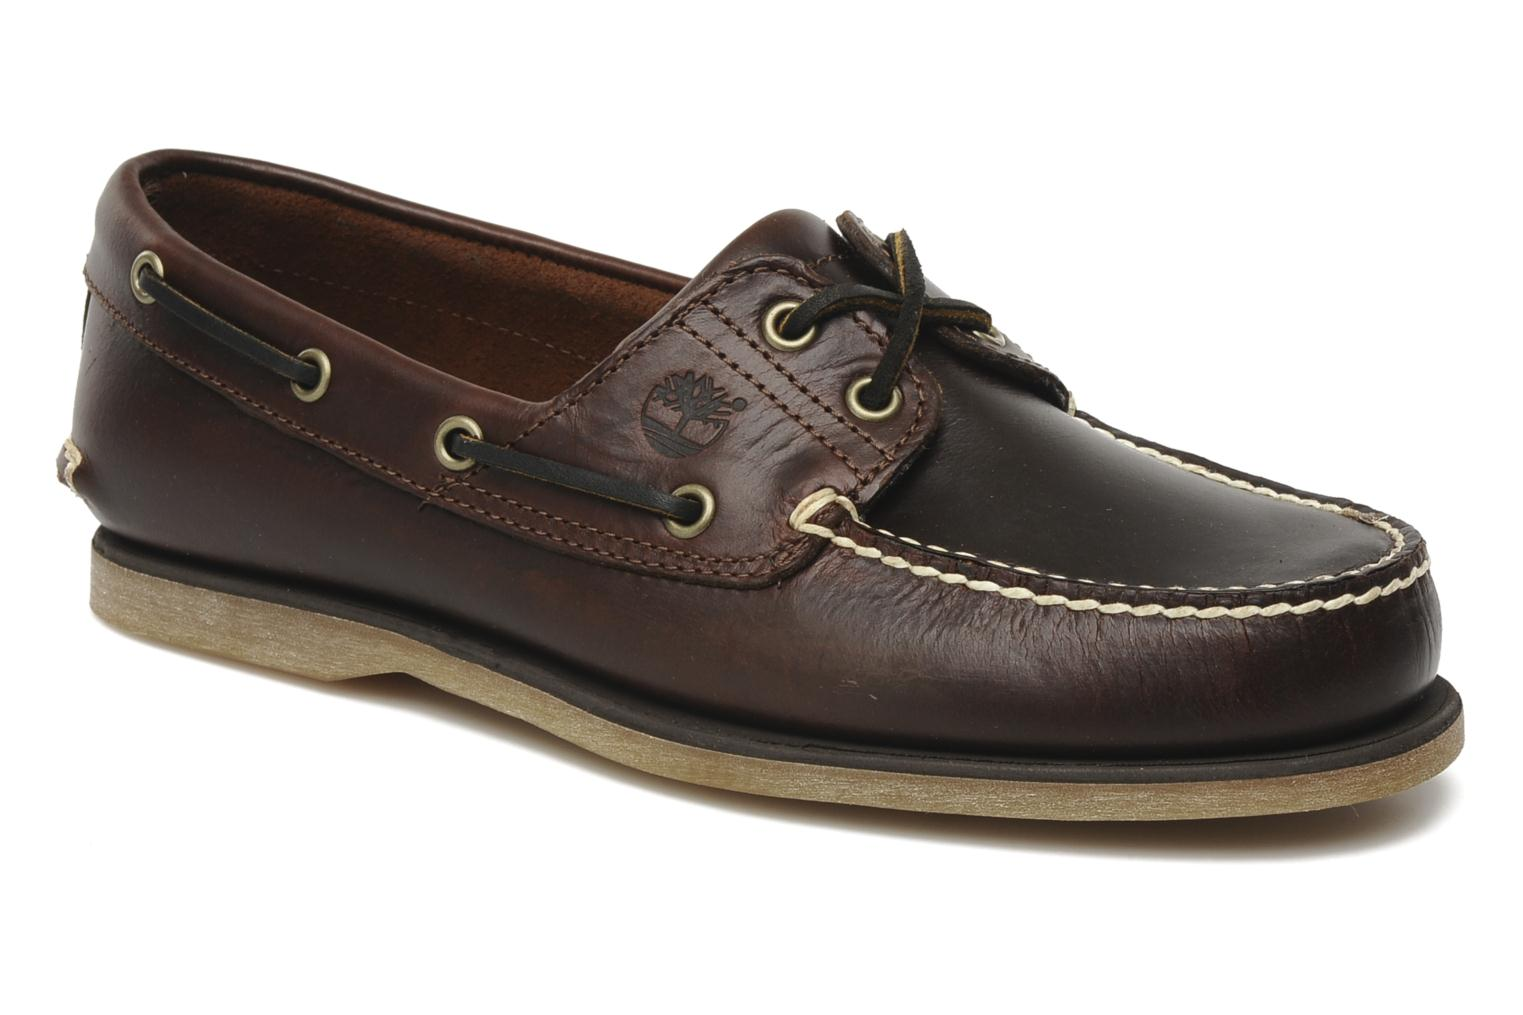 Classic boat classic 2 tone 2 eye Rootbeer Smooth